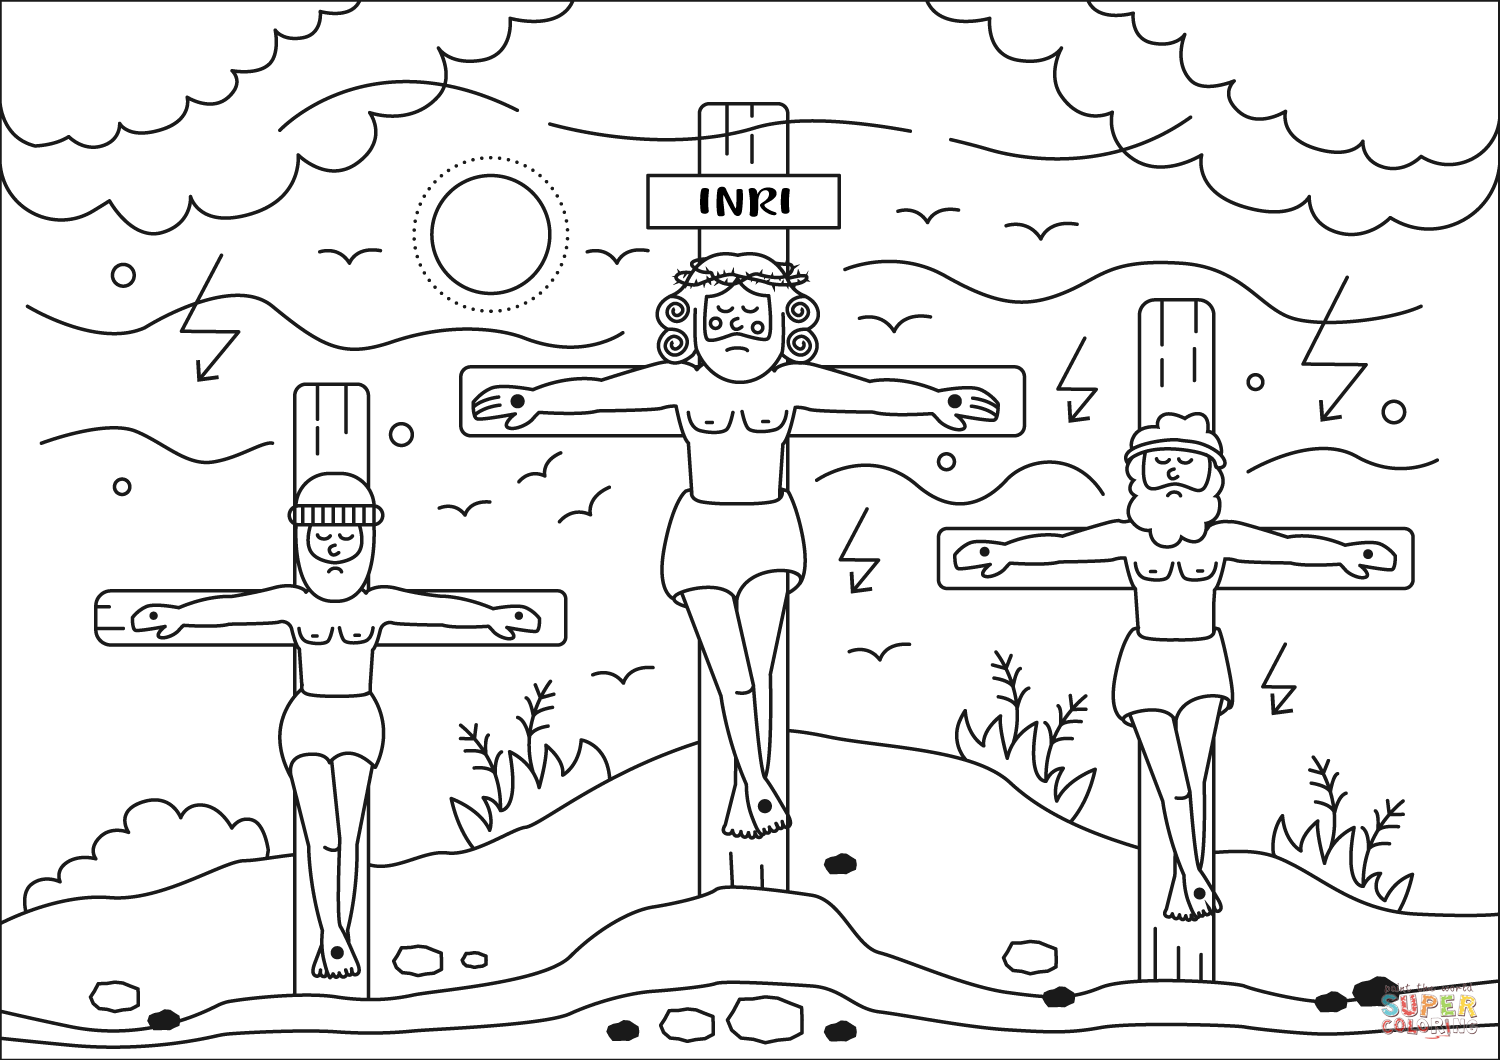 Crucifixion Of Christ Jesus On The Cross And Two Thieves Super Coloring Crucifixion Of Jesus Jesus Coloring Pages Jesus On The Cross [ 1060 x 1500 Pixel ]